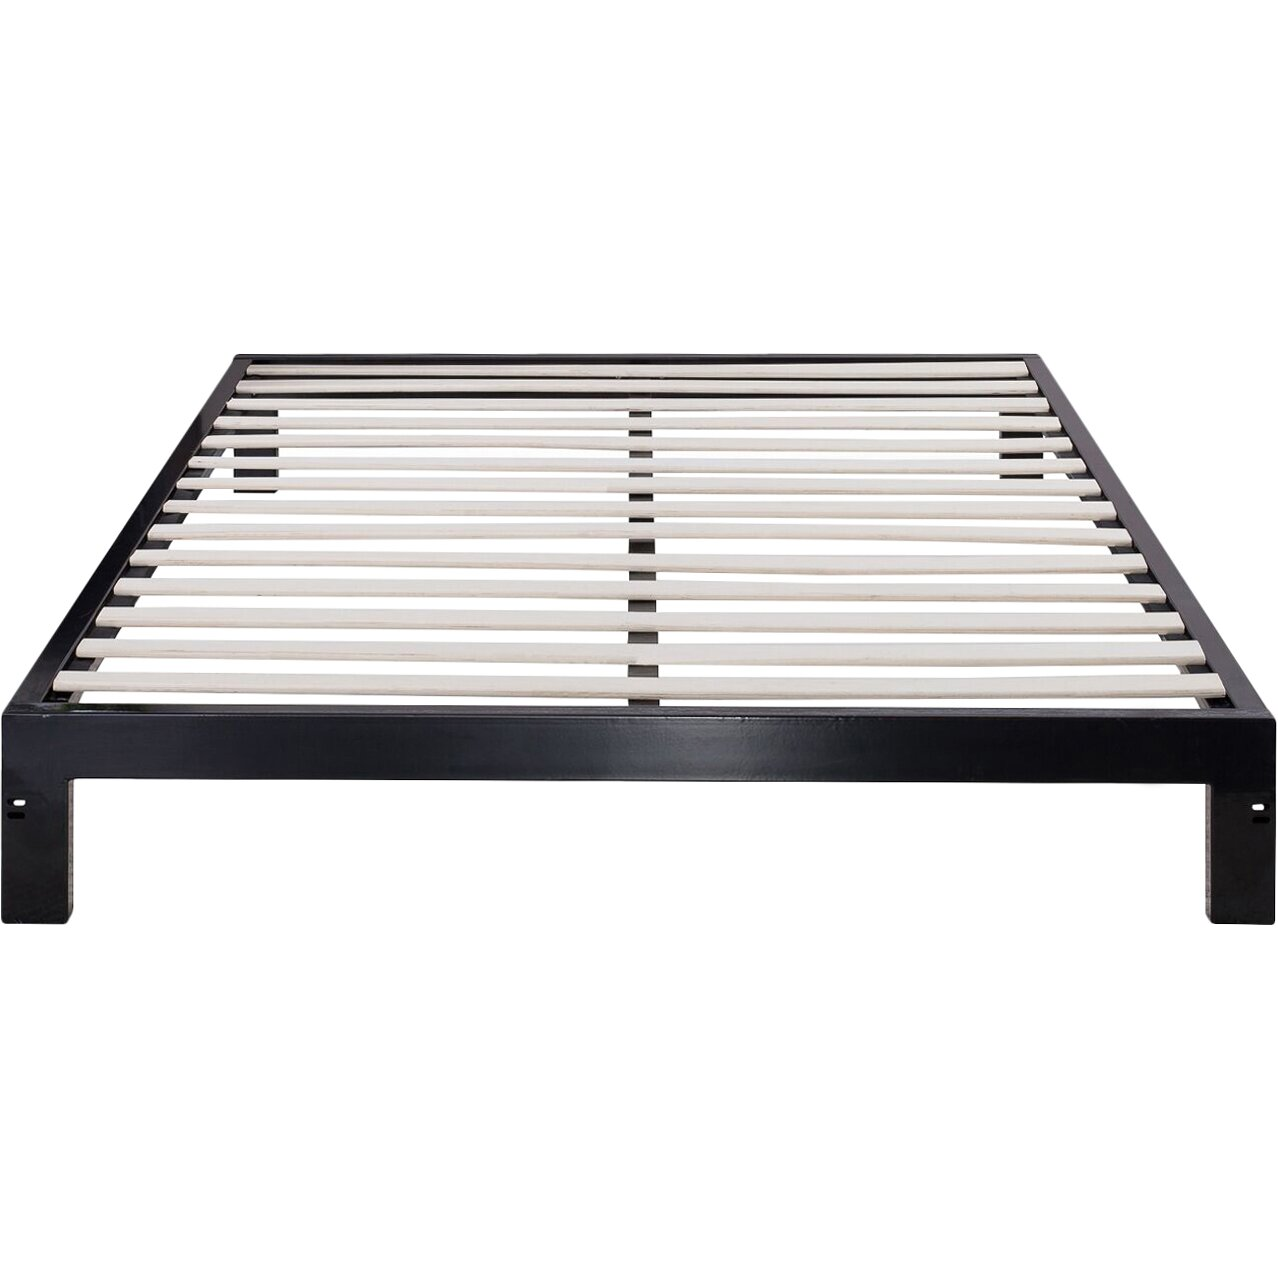 Furniture Bedroom Furniture Mattress Foundations Orthotherapy Sku